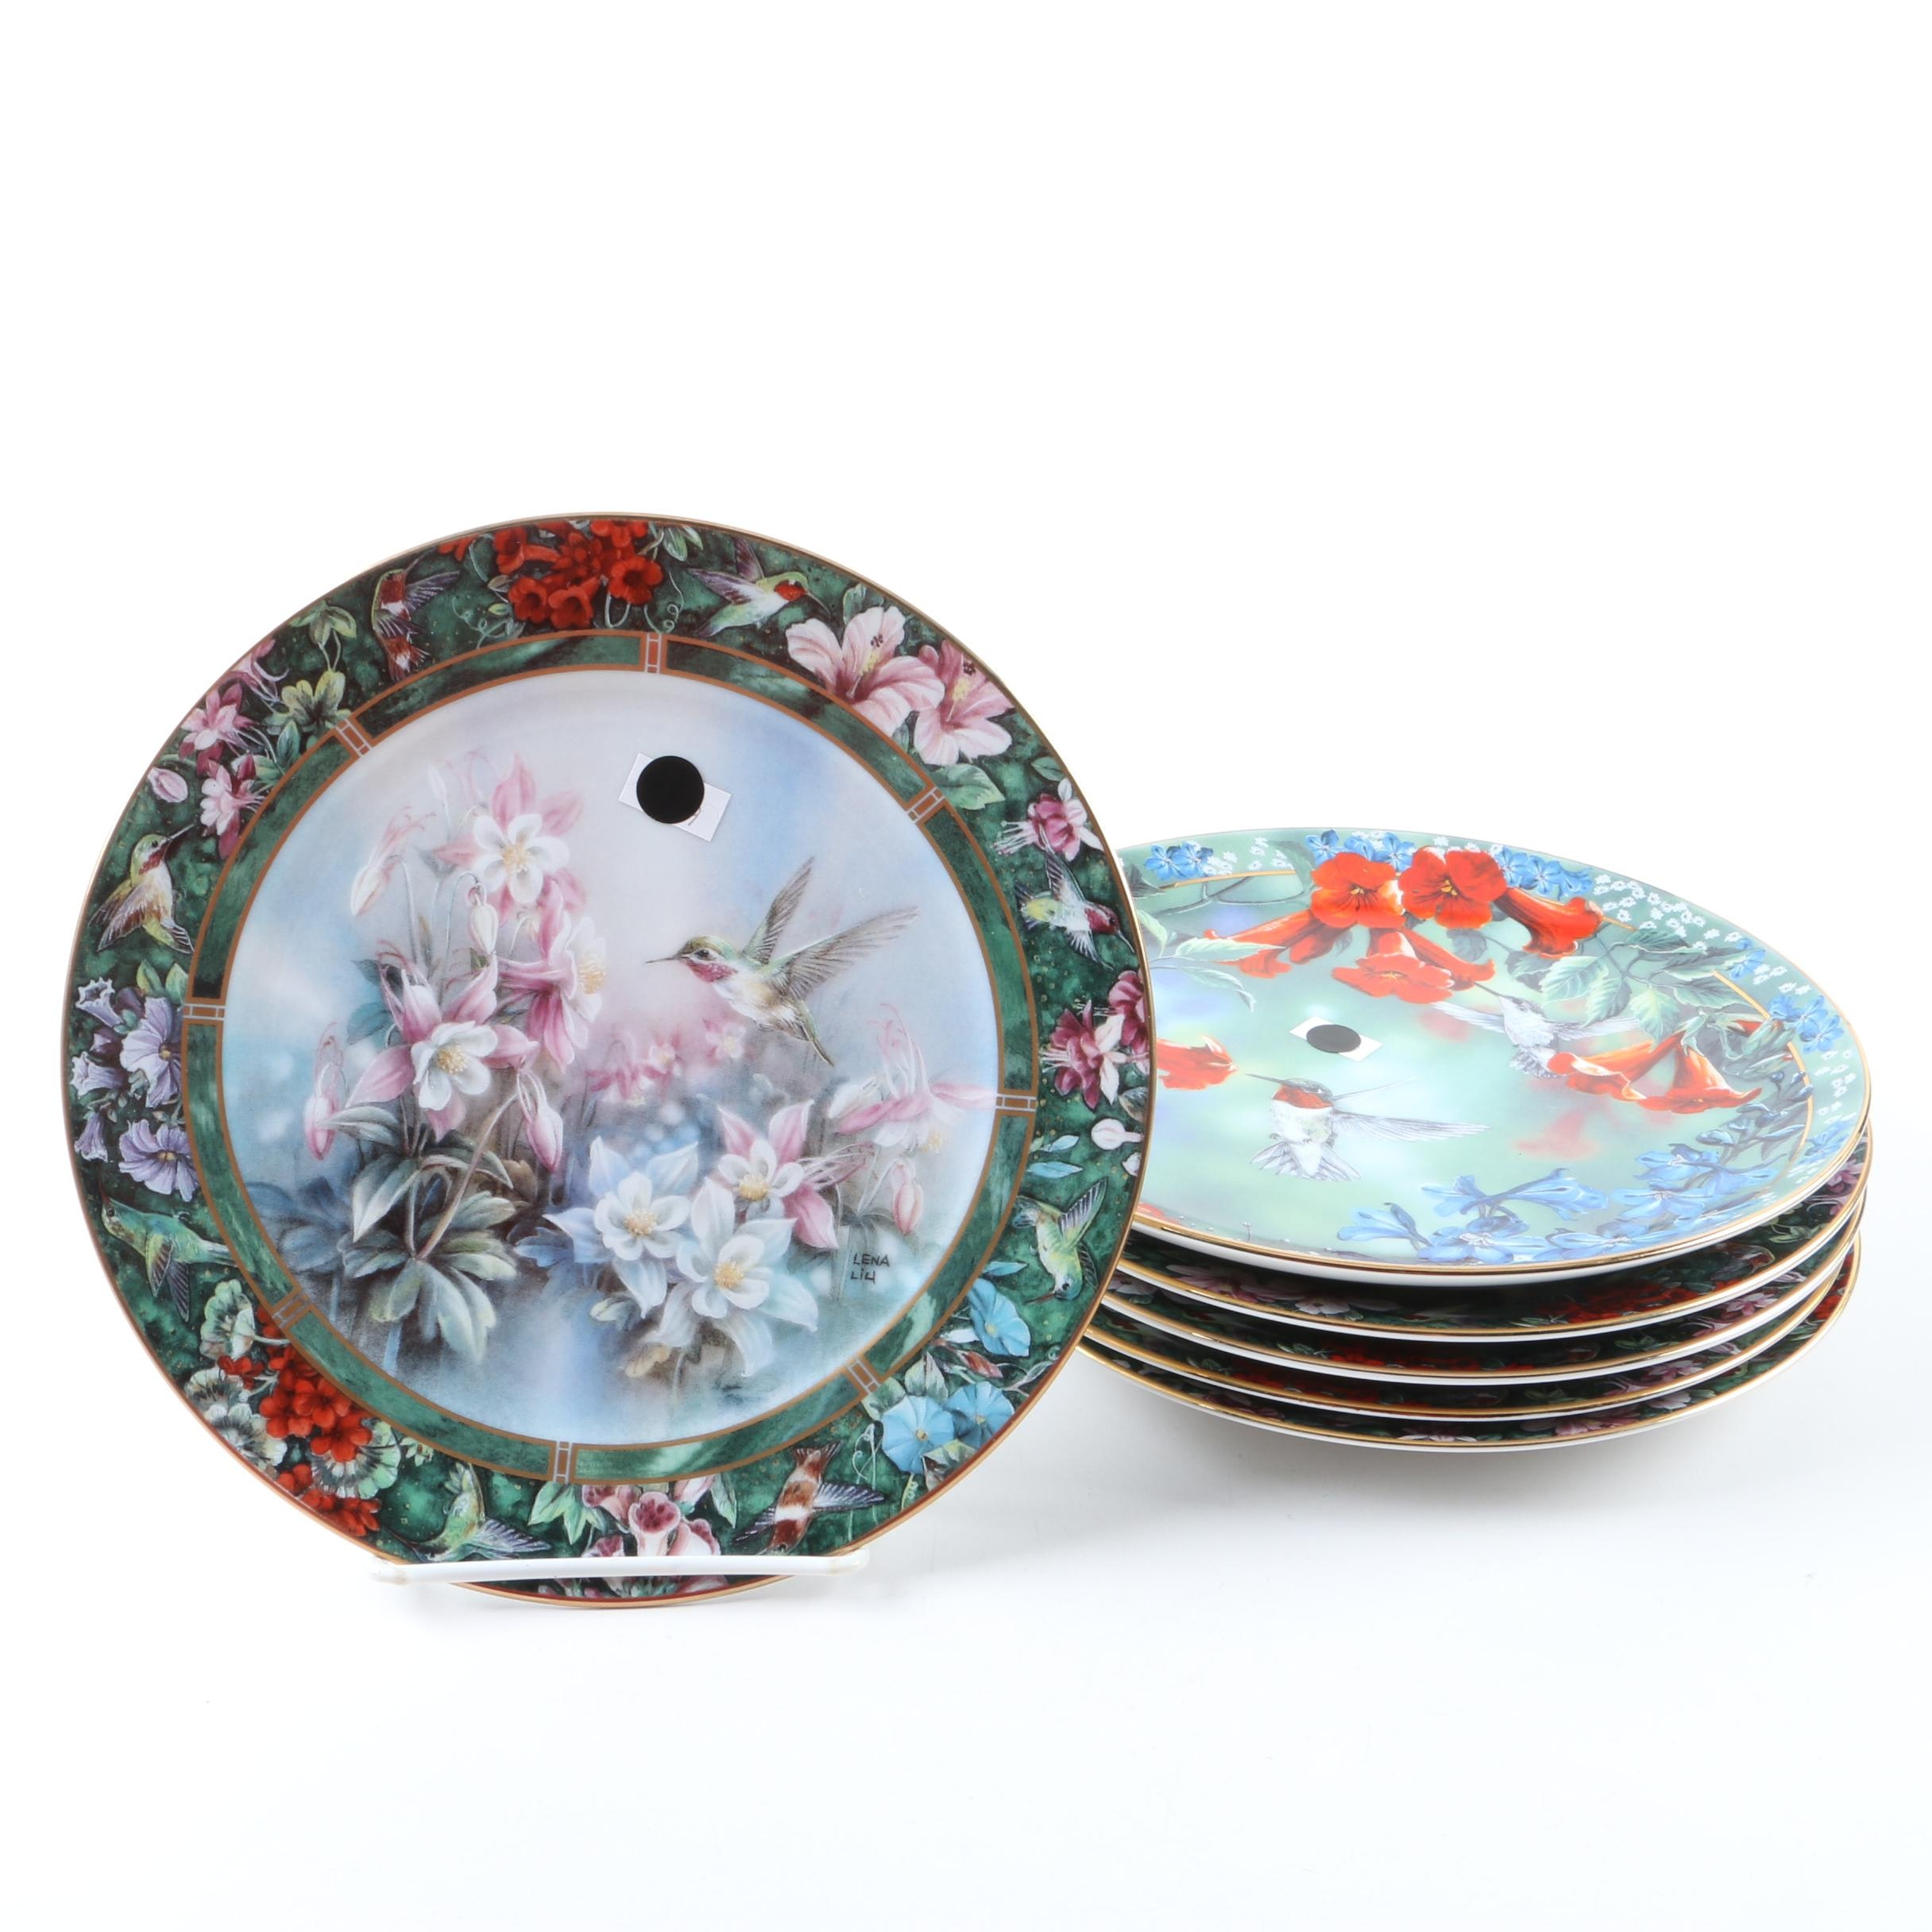 Limited Edition Hummingbird Plates by Janene Grende and Lena Liu